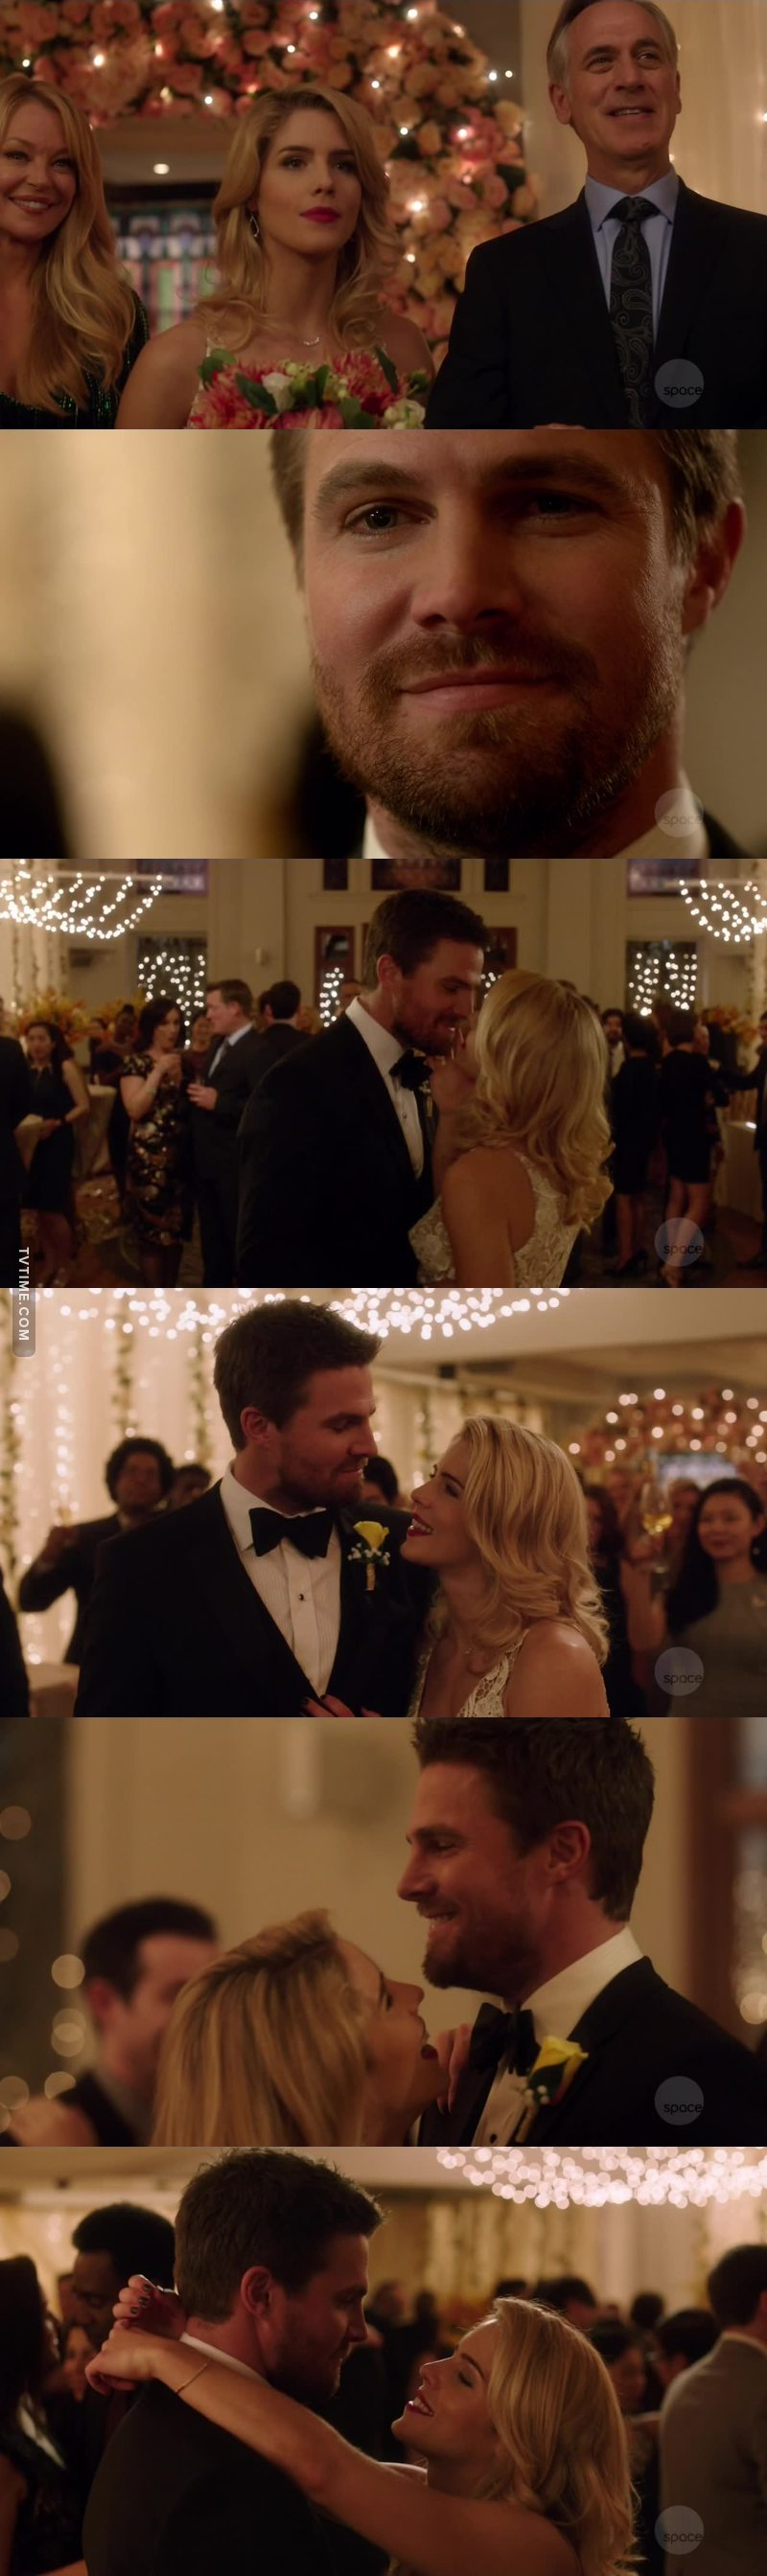 IT'S ABOUT DAMN TIME!! I LOVE THIS COUPLE 😭😭💛💛 #olicity